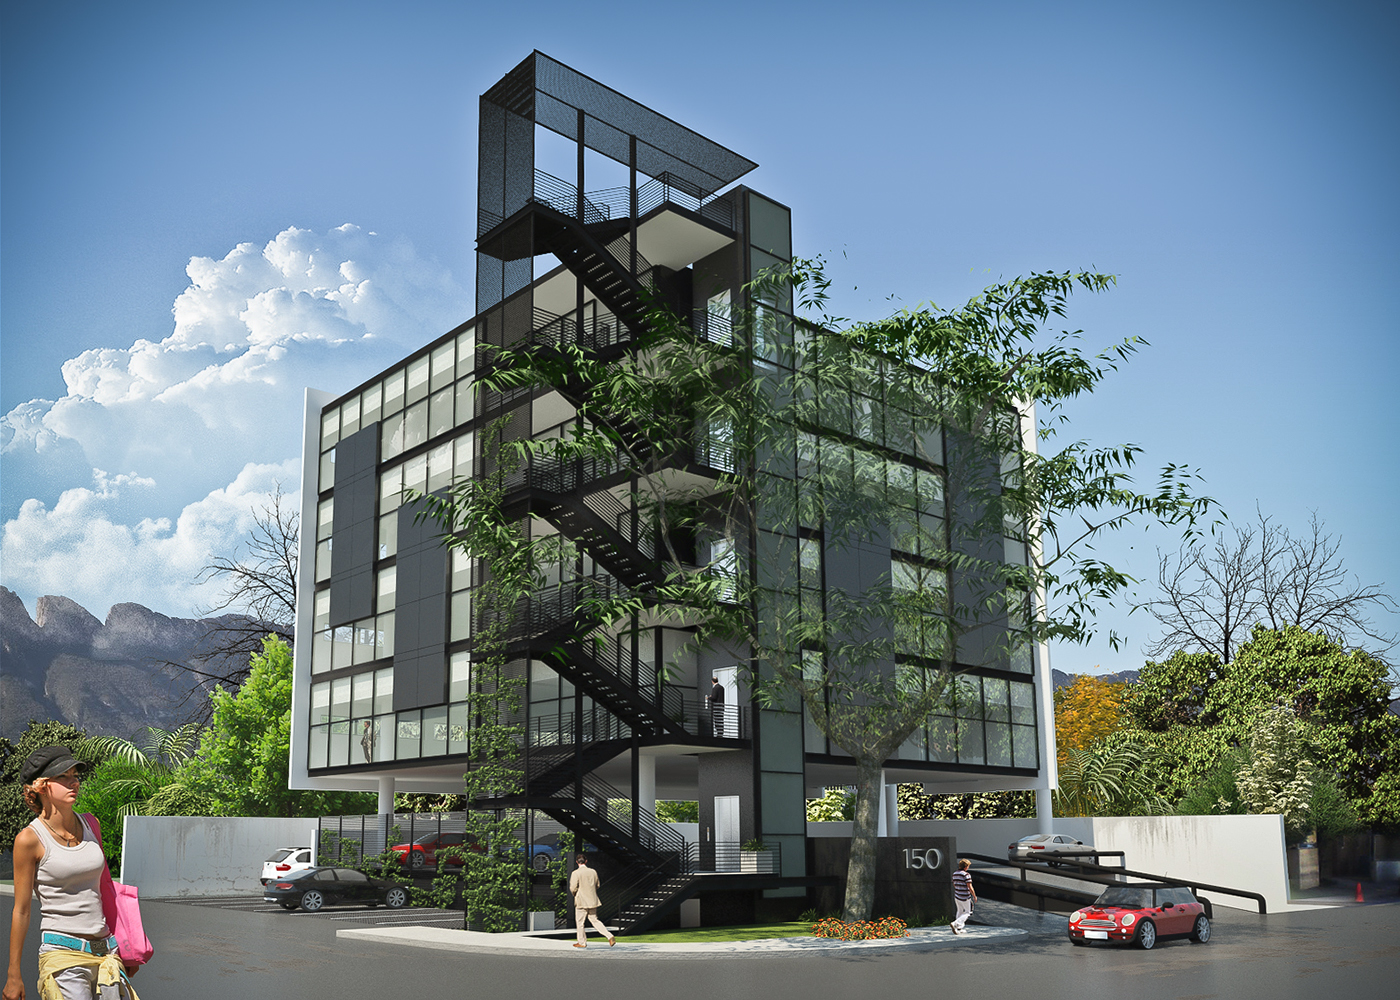 offices,building,stairs,parking,mexico